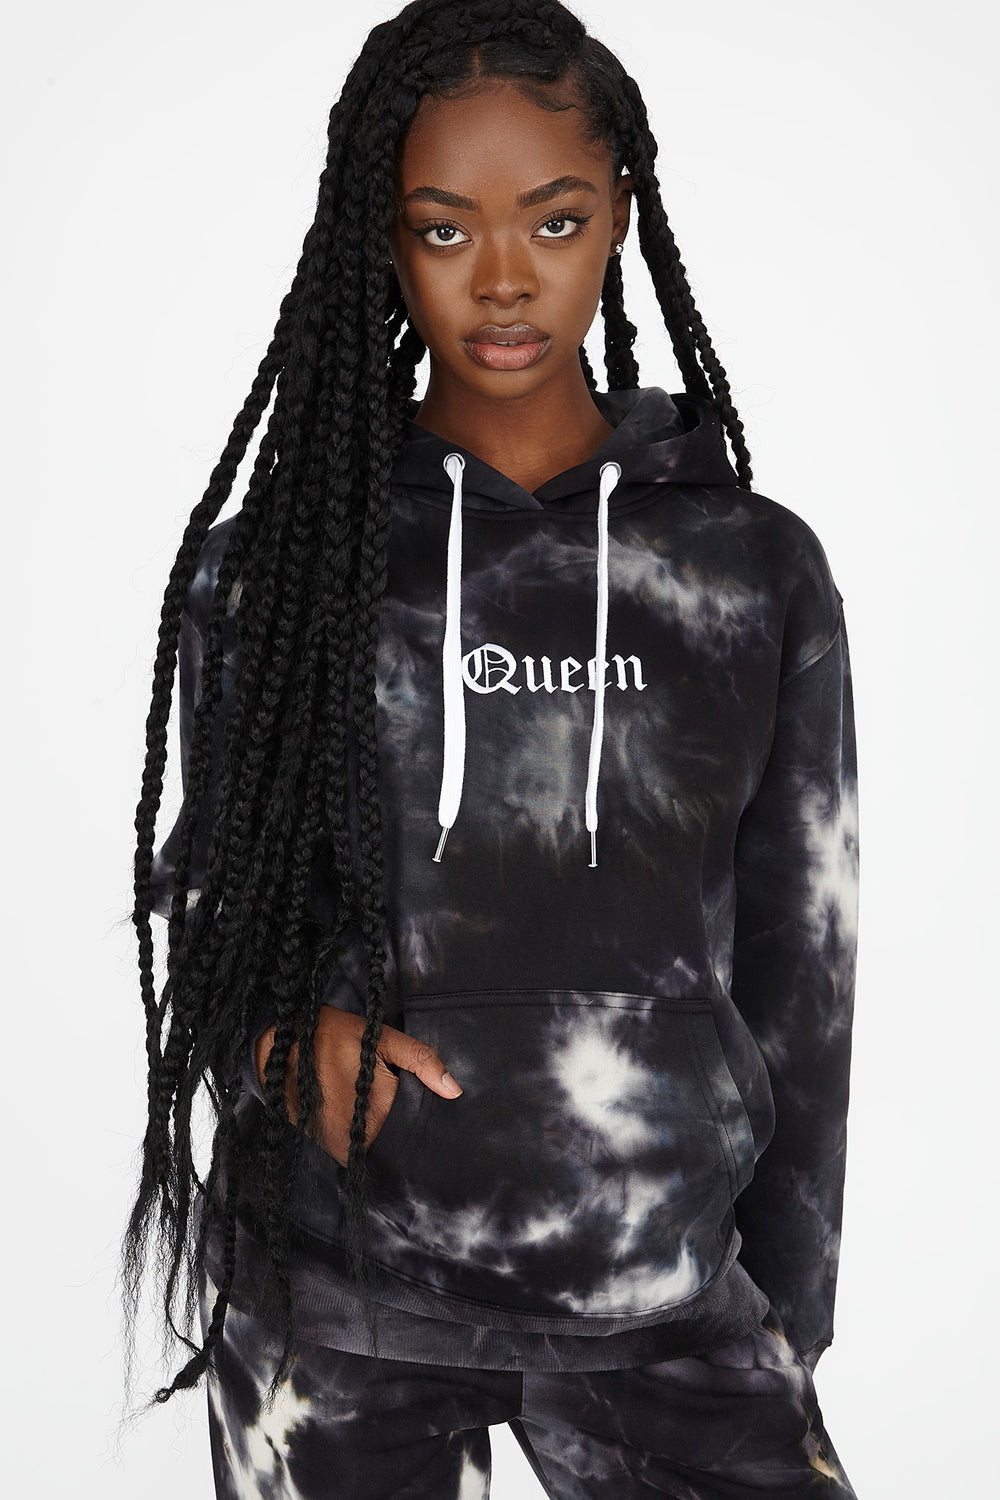 Best Ever Fleece Tie Dye Graphic Queen Hoodie Black with White